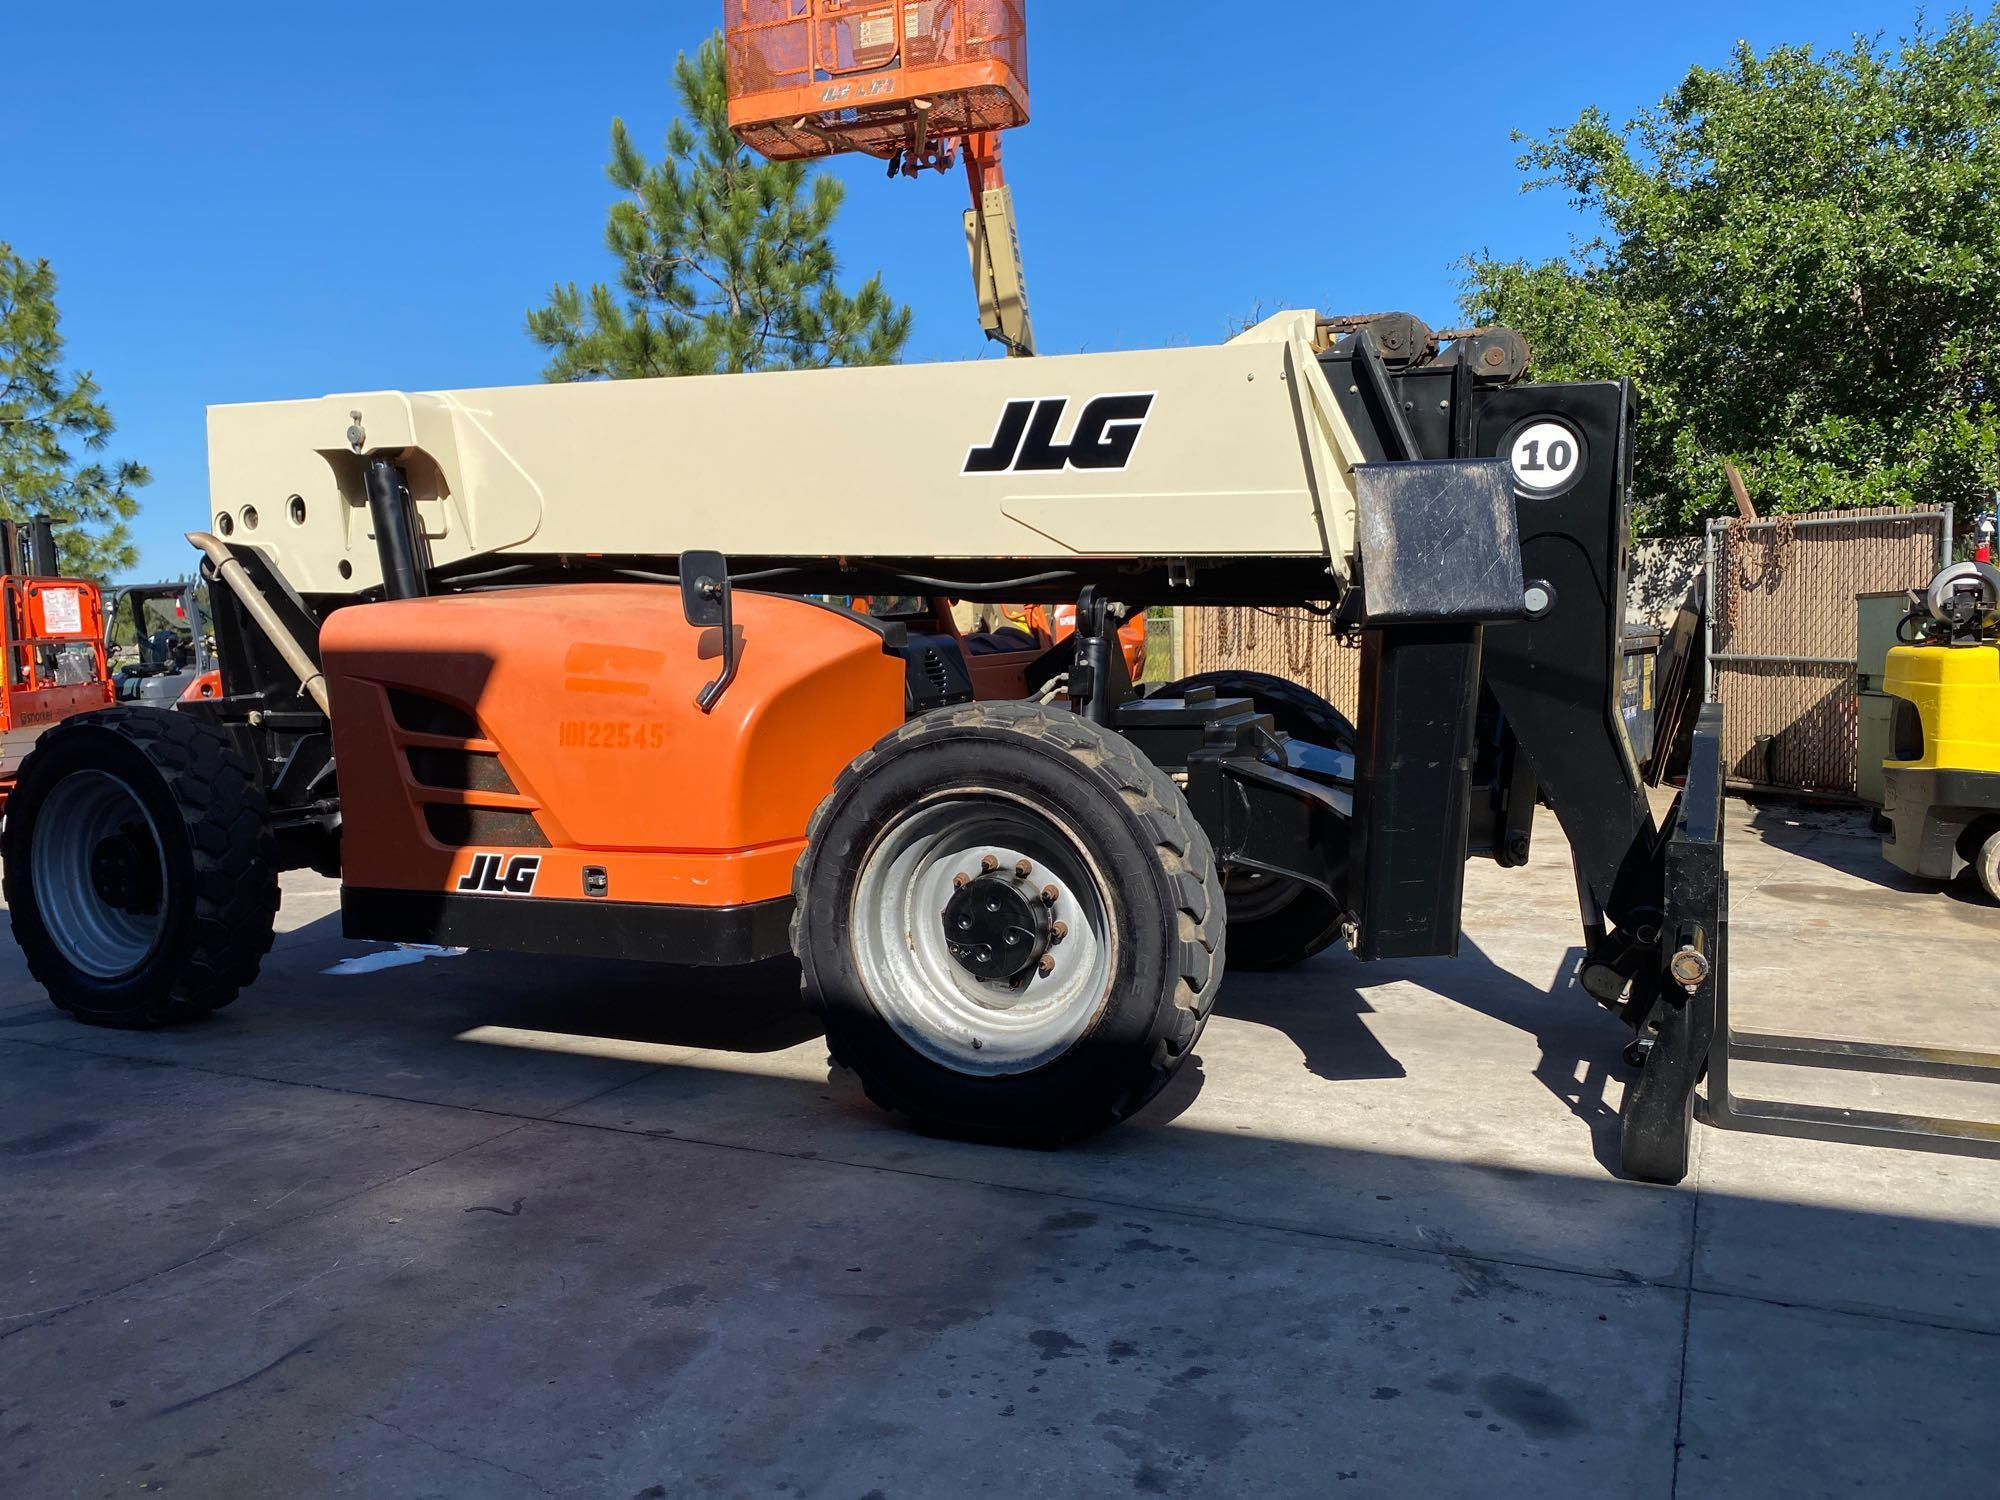 2013 JLG TELESCOPIC FORKLIFT MODEL G10-55A, 10,000 LB CAPACITY, OUTRIGGERS, 5,717.7 HOURS SHOWING, C - Image 14 of 16